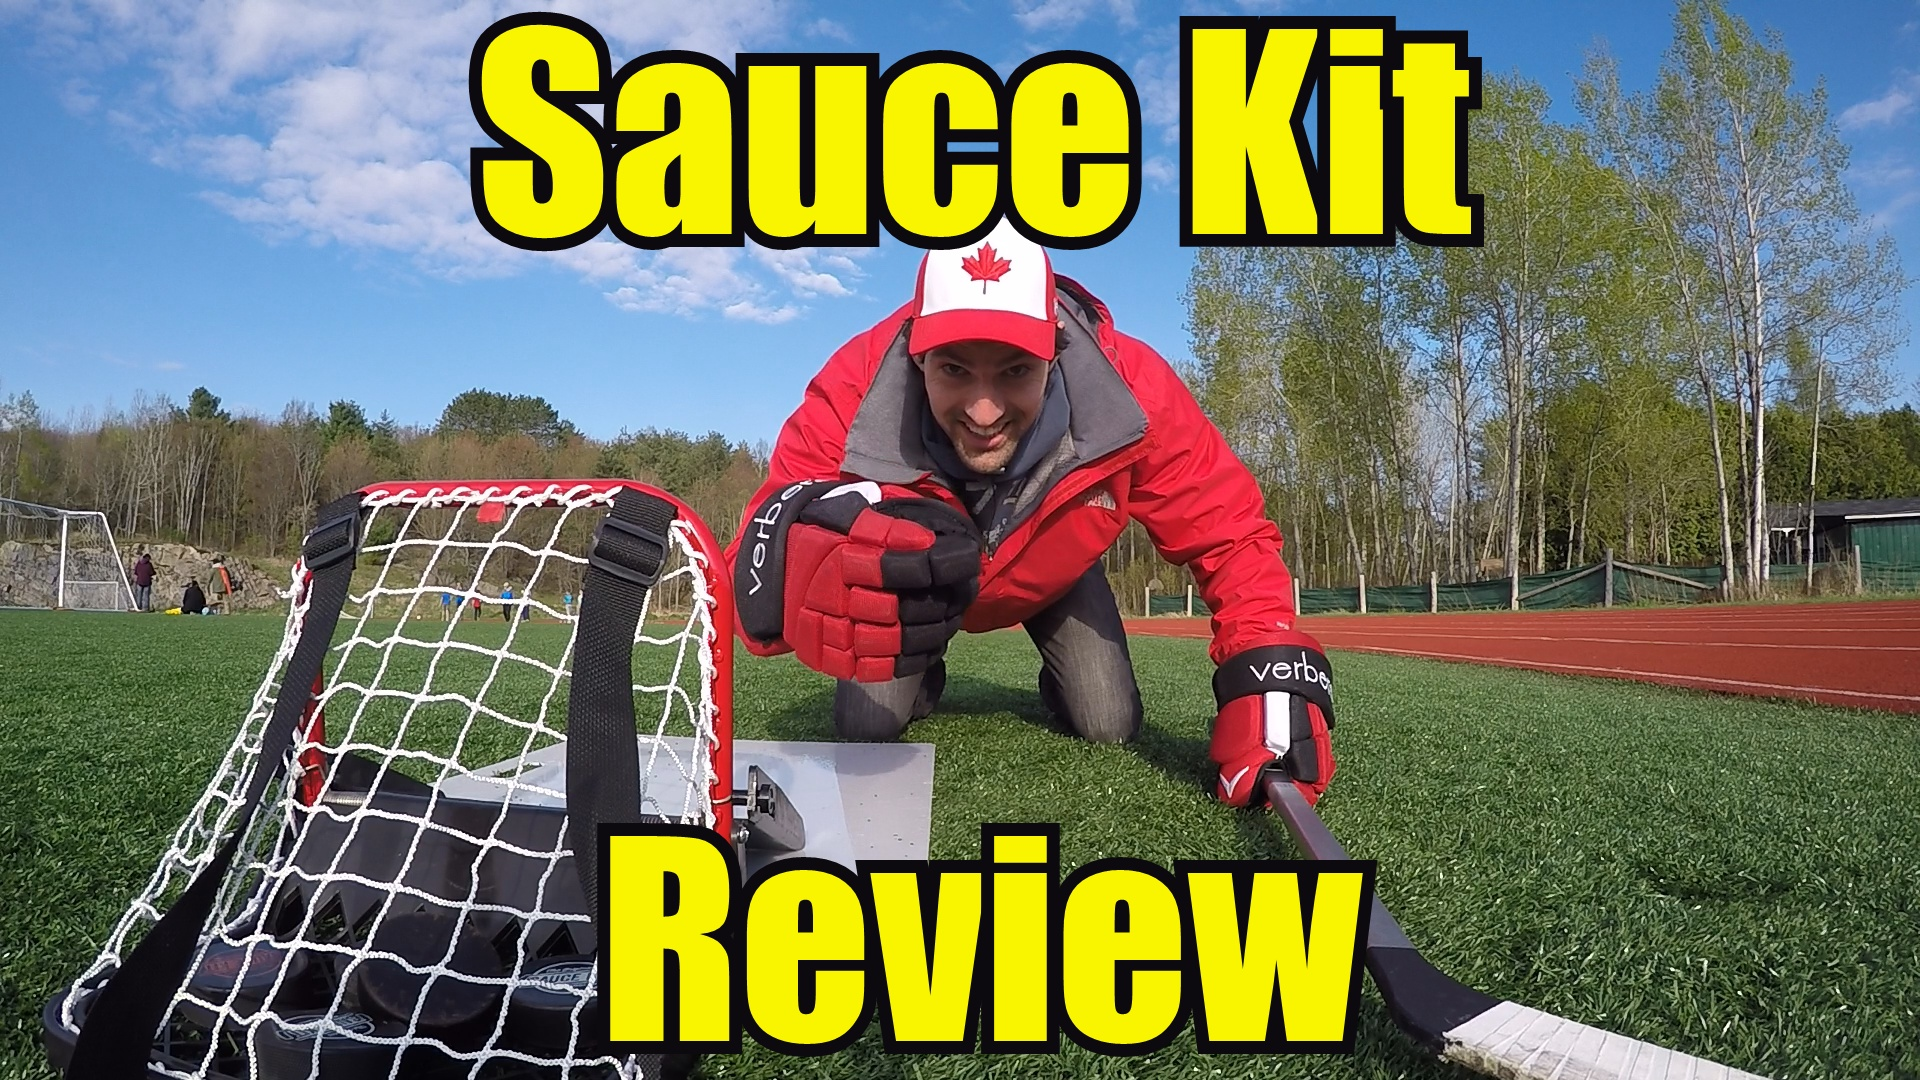 Hockey Sauce Kit Review